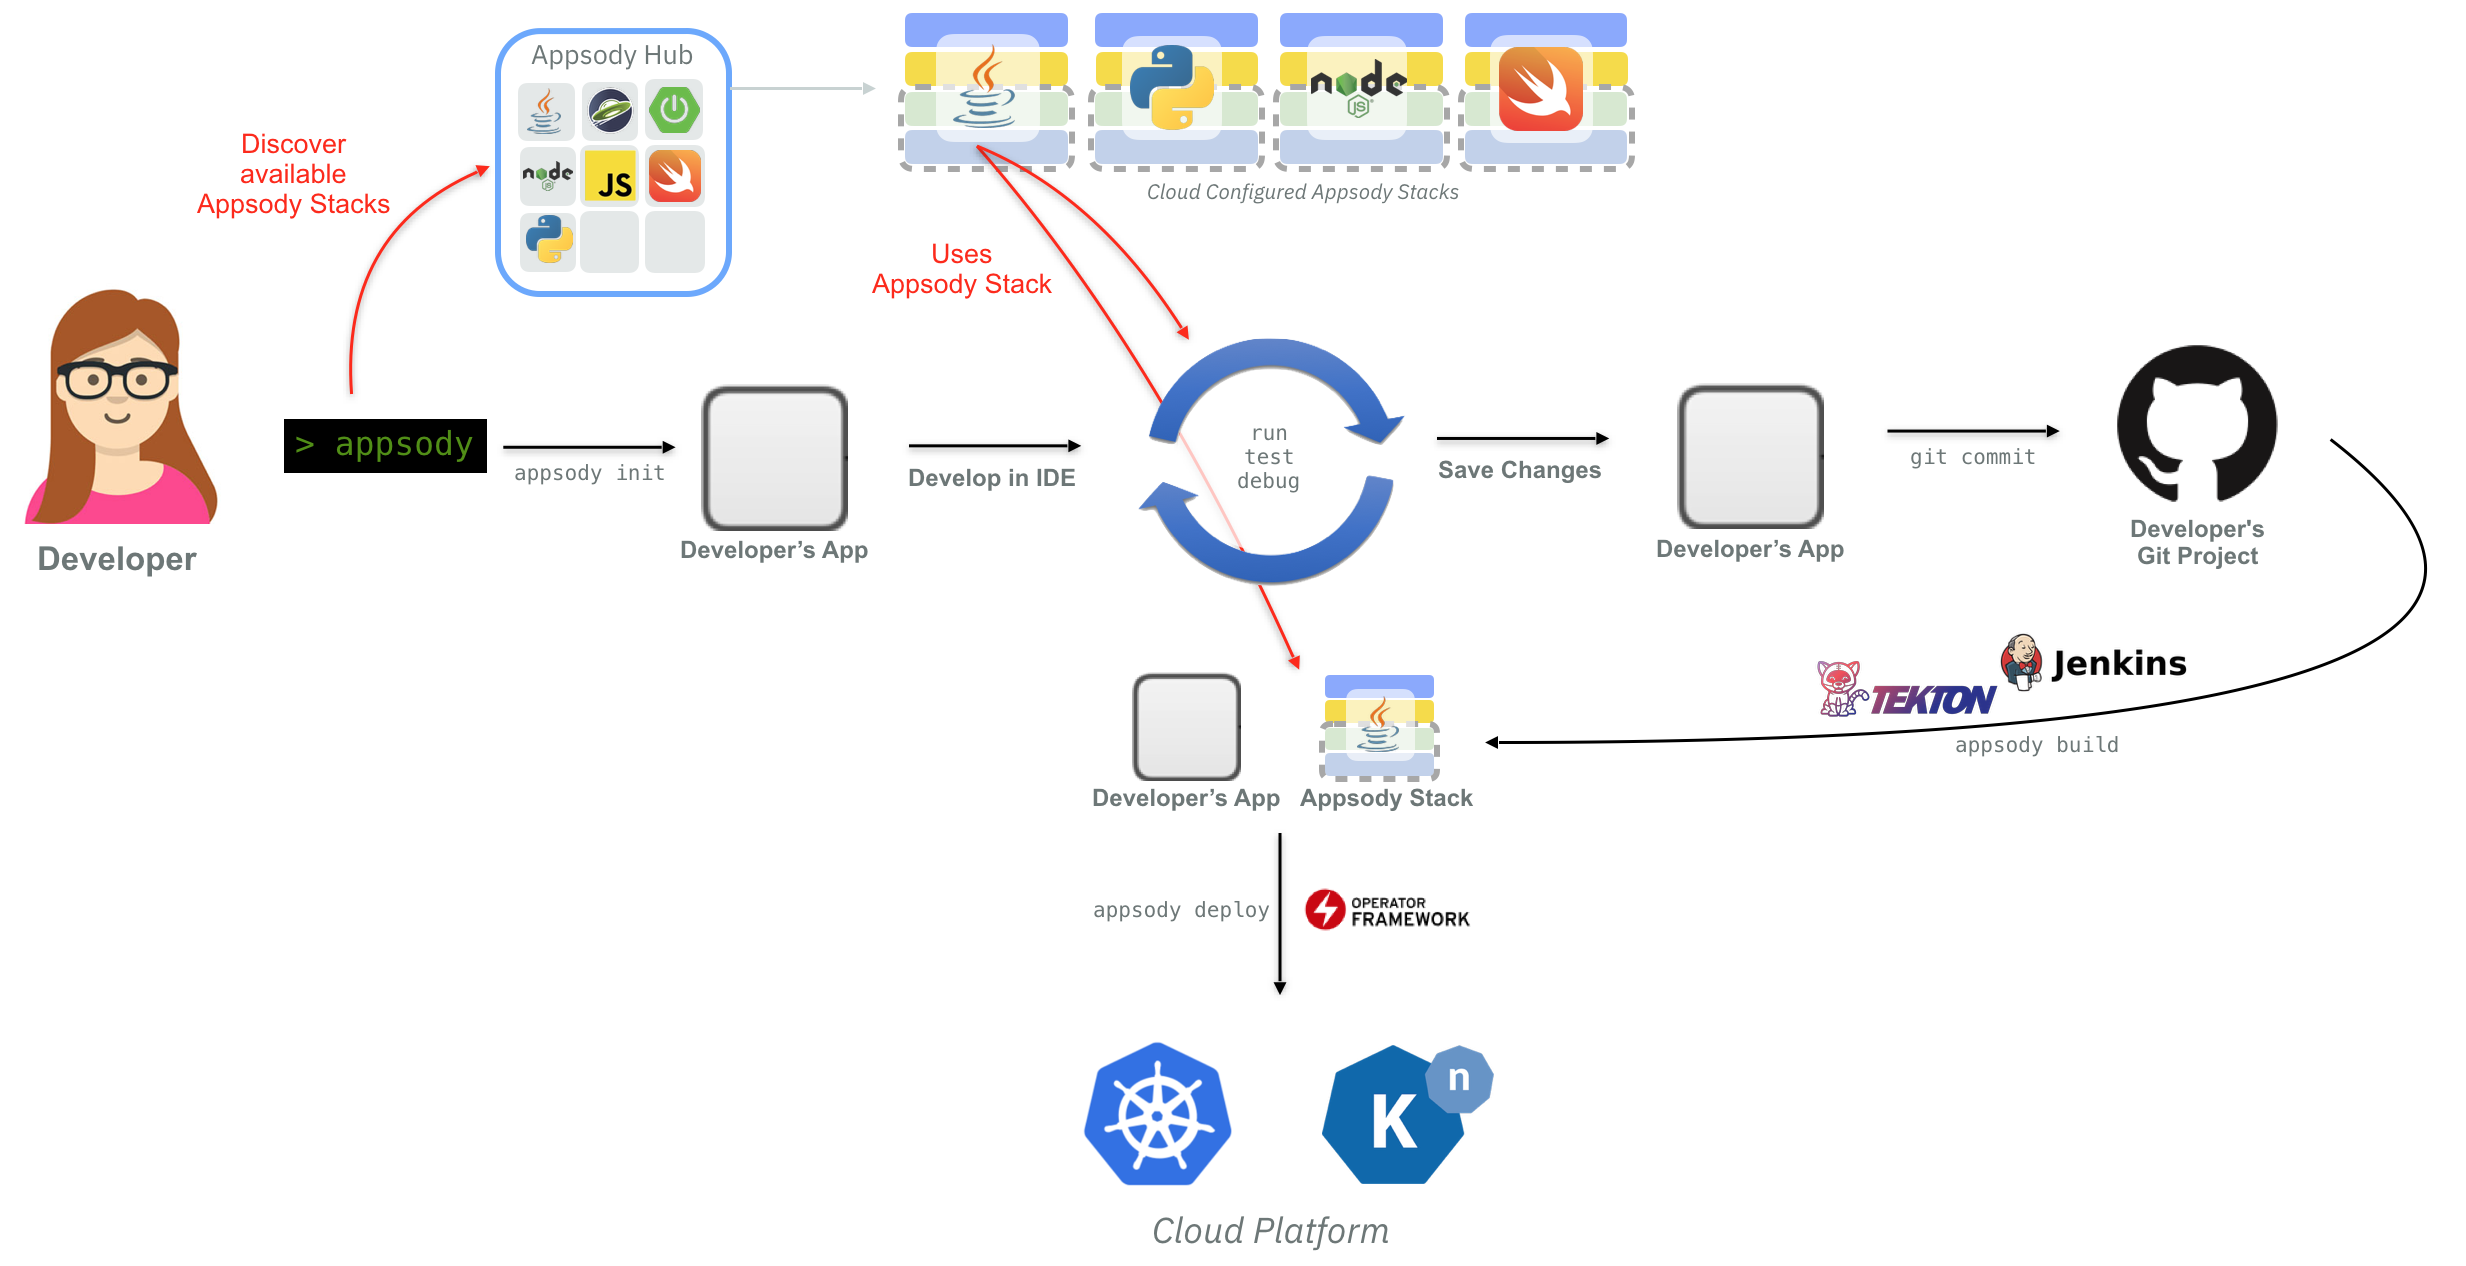 Flow diagram showing how the Appsody CLI implements create, run, test, debug, build and deploy for cloud-native applications.